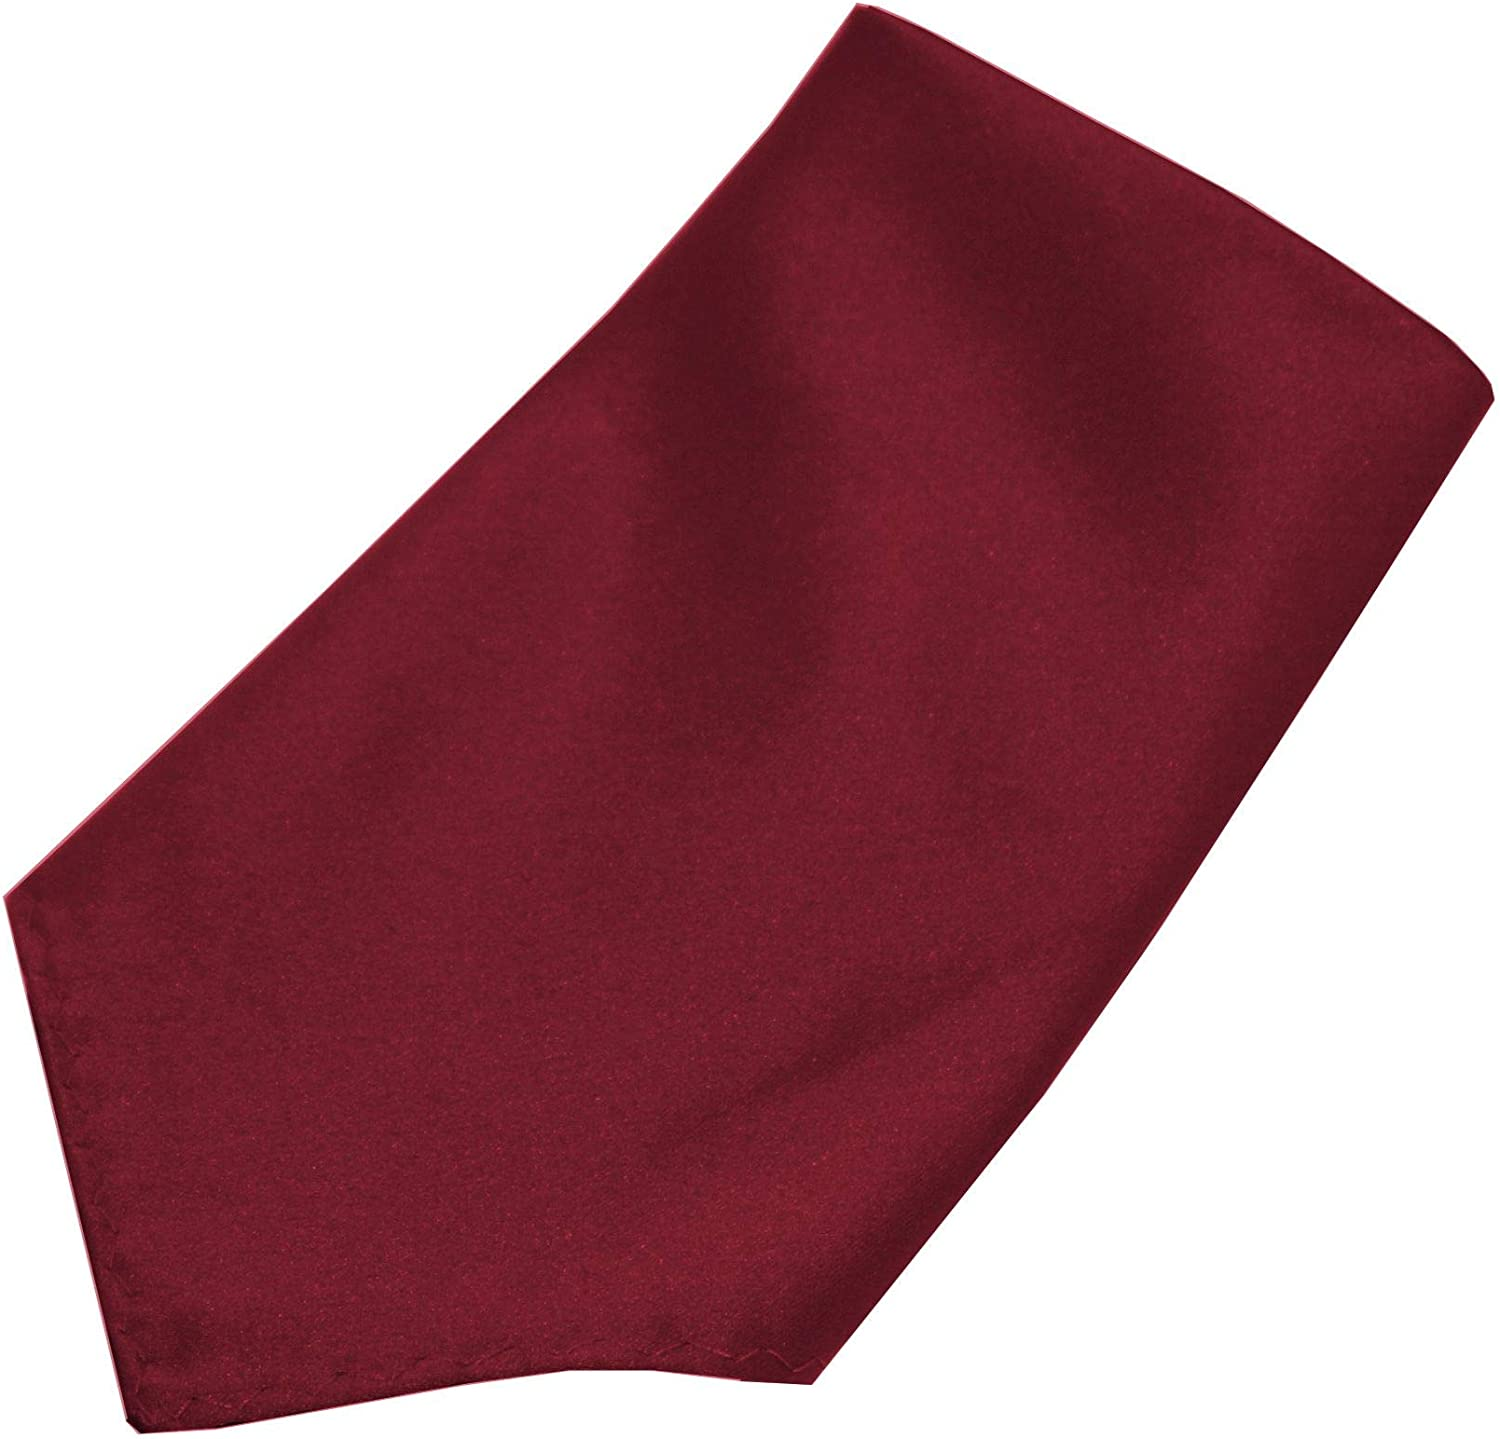 Poly Satin Rapid rise pocket square Limited price 10'' by in Comes 10''. P colors. forty